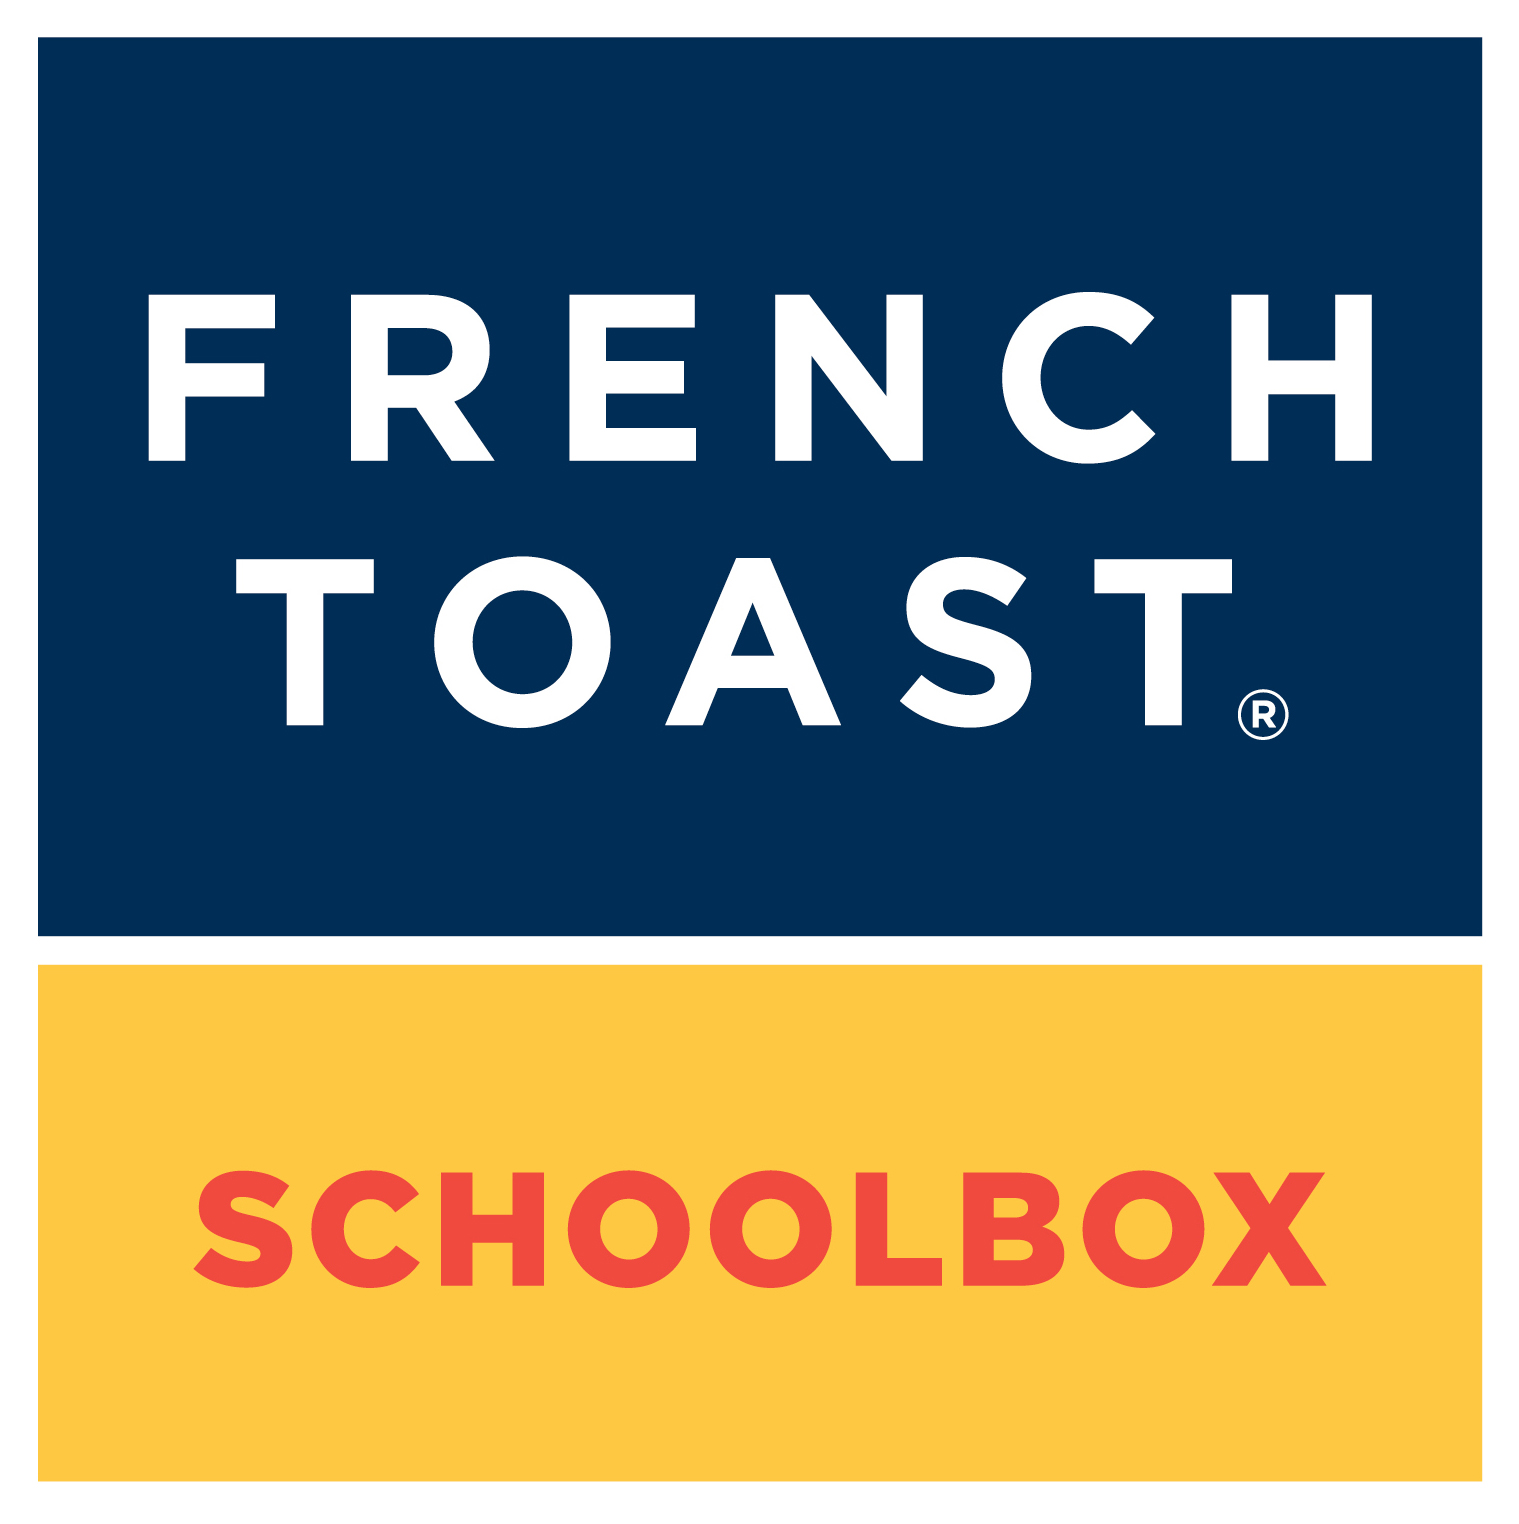 French Toast Schoolbox.png